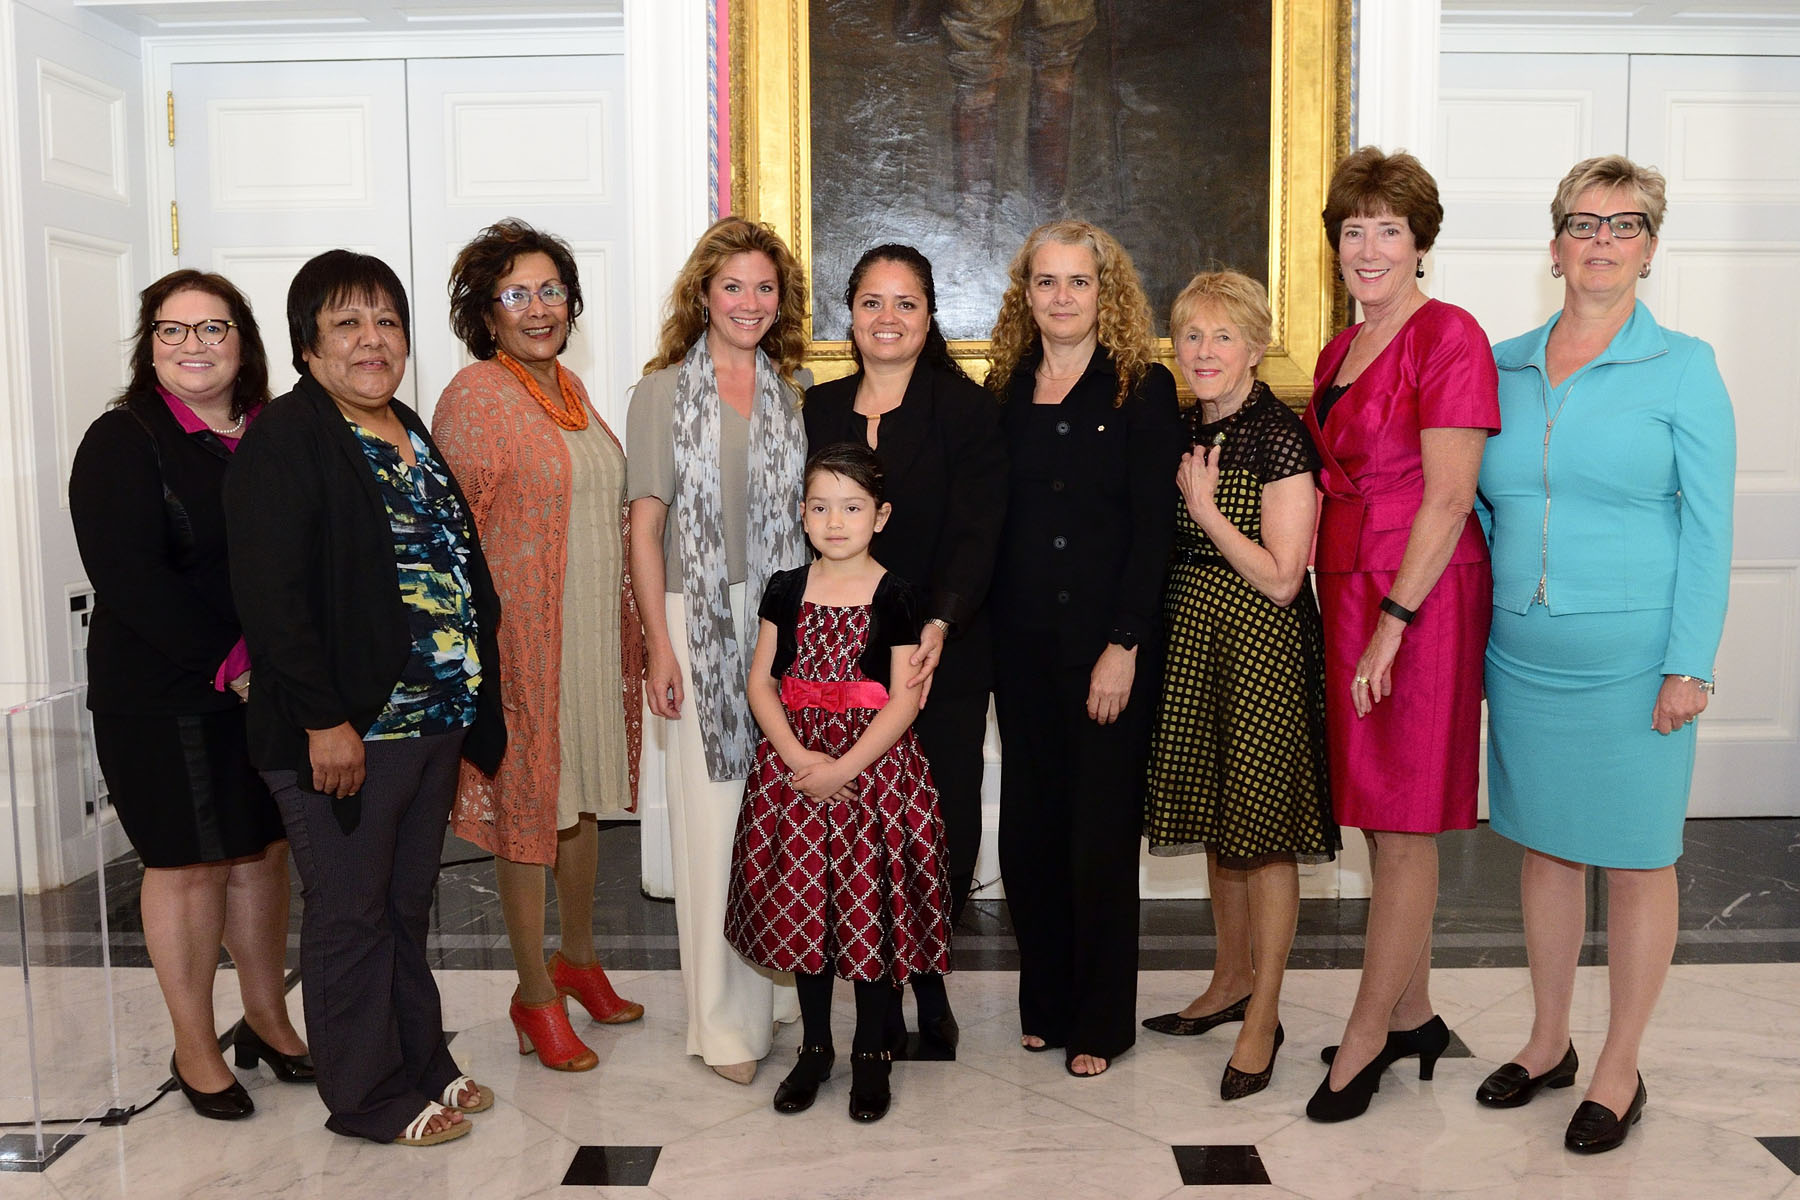 Her Excellency Sharon Johnston hosted the second Because Mothers Matter Award for Home Instruction for Parents of Preschool Youngsters (HIPPY) Canada, during a ceremony at Rideau Hall.